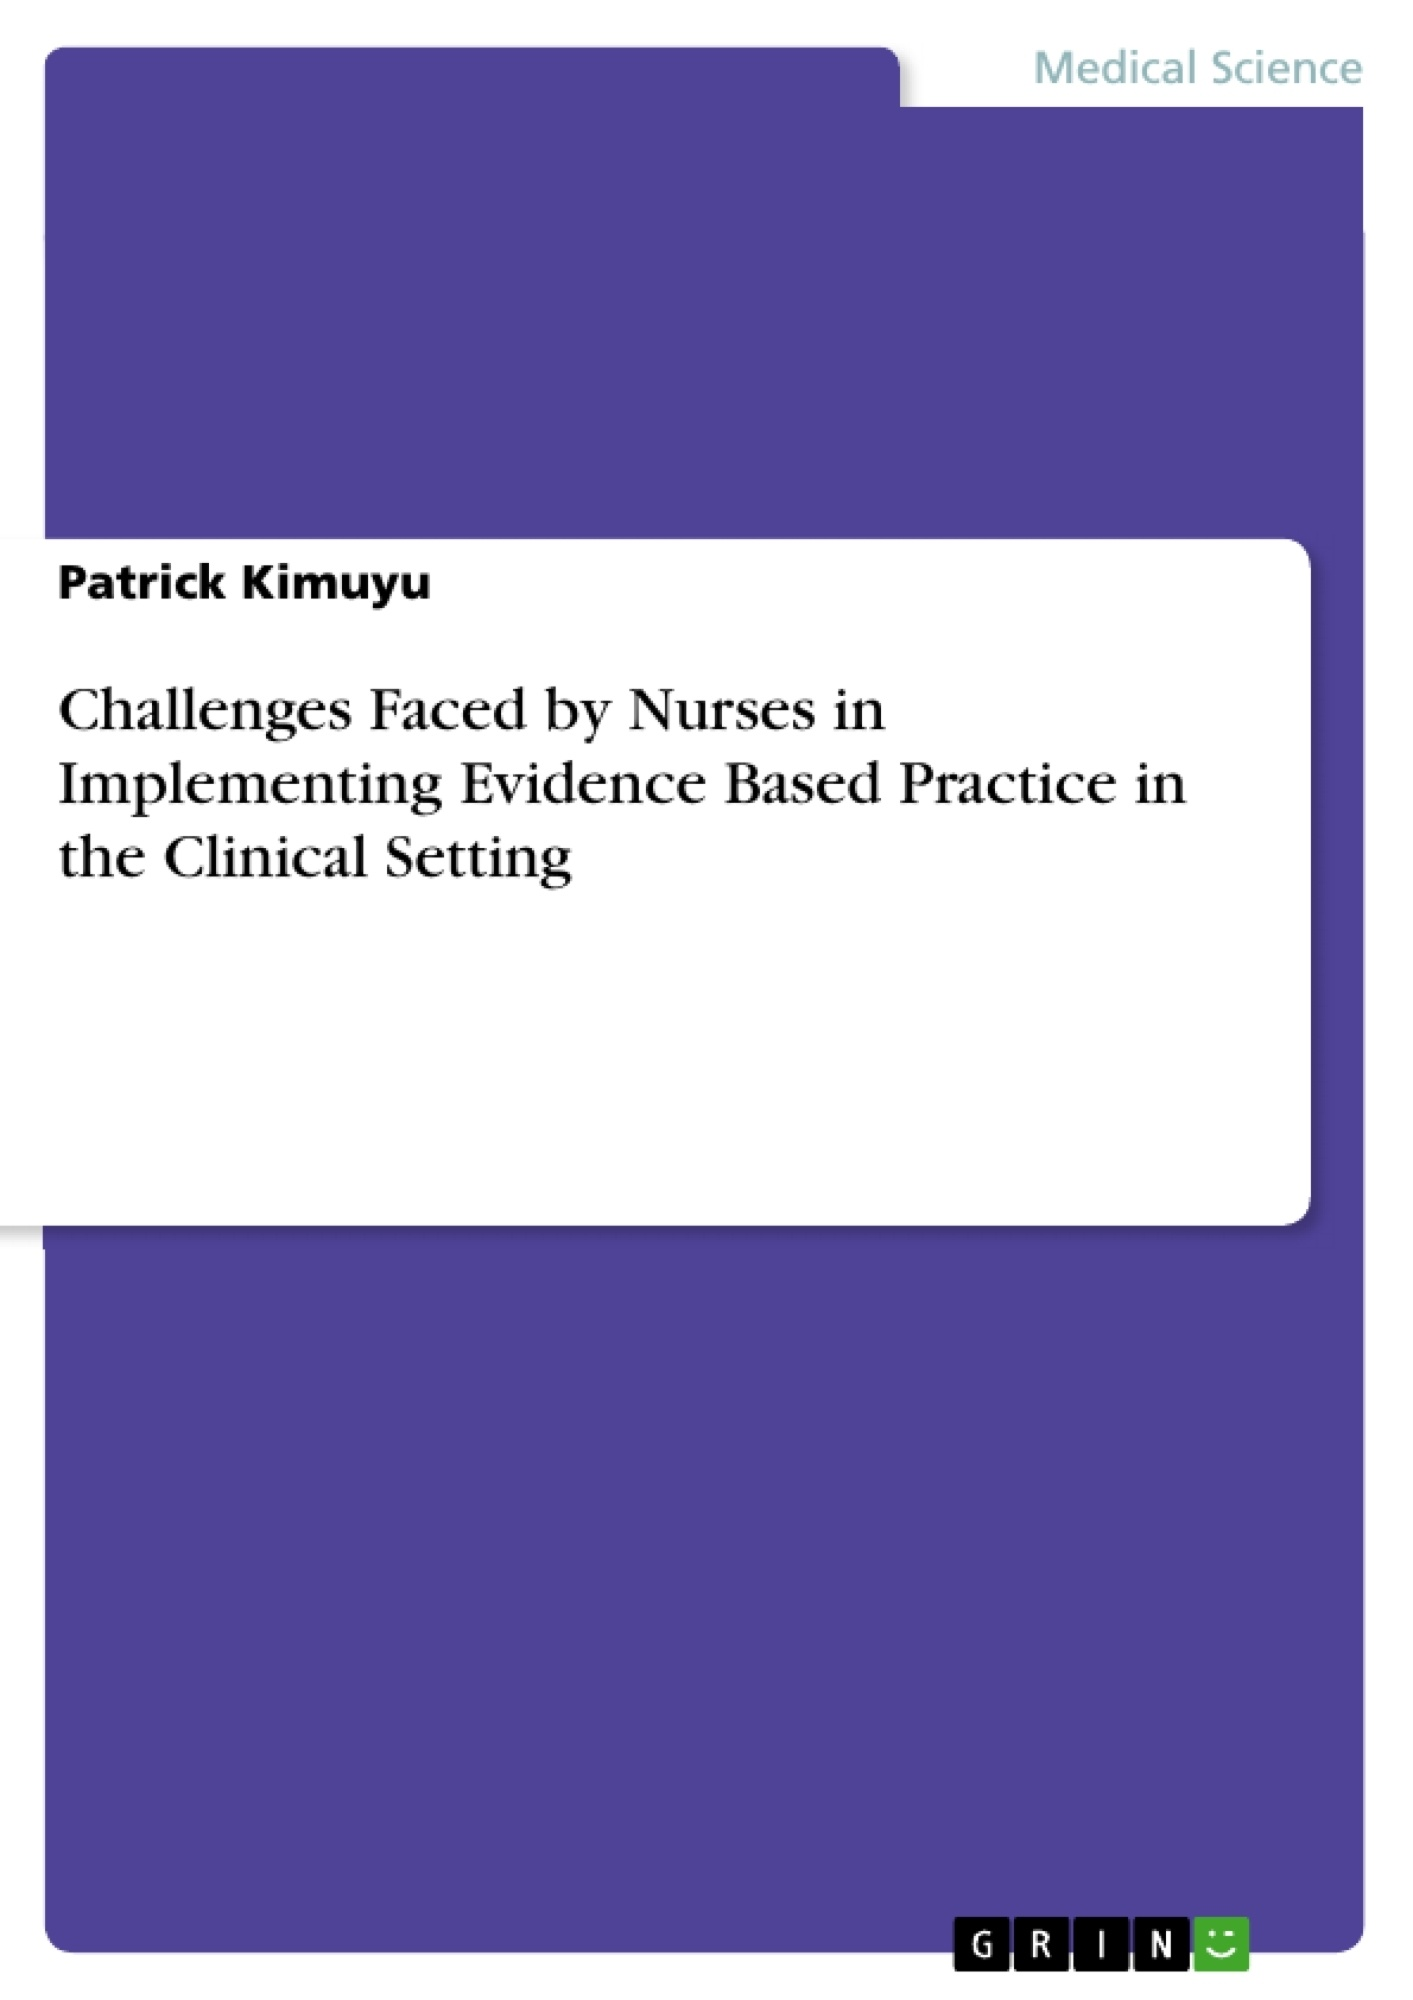 Title: Challenges Faced by Nurses in Implementing Evidence Based Practice in the Clinical Setting